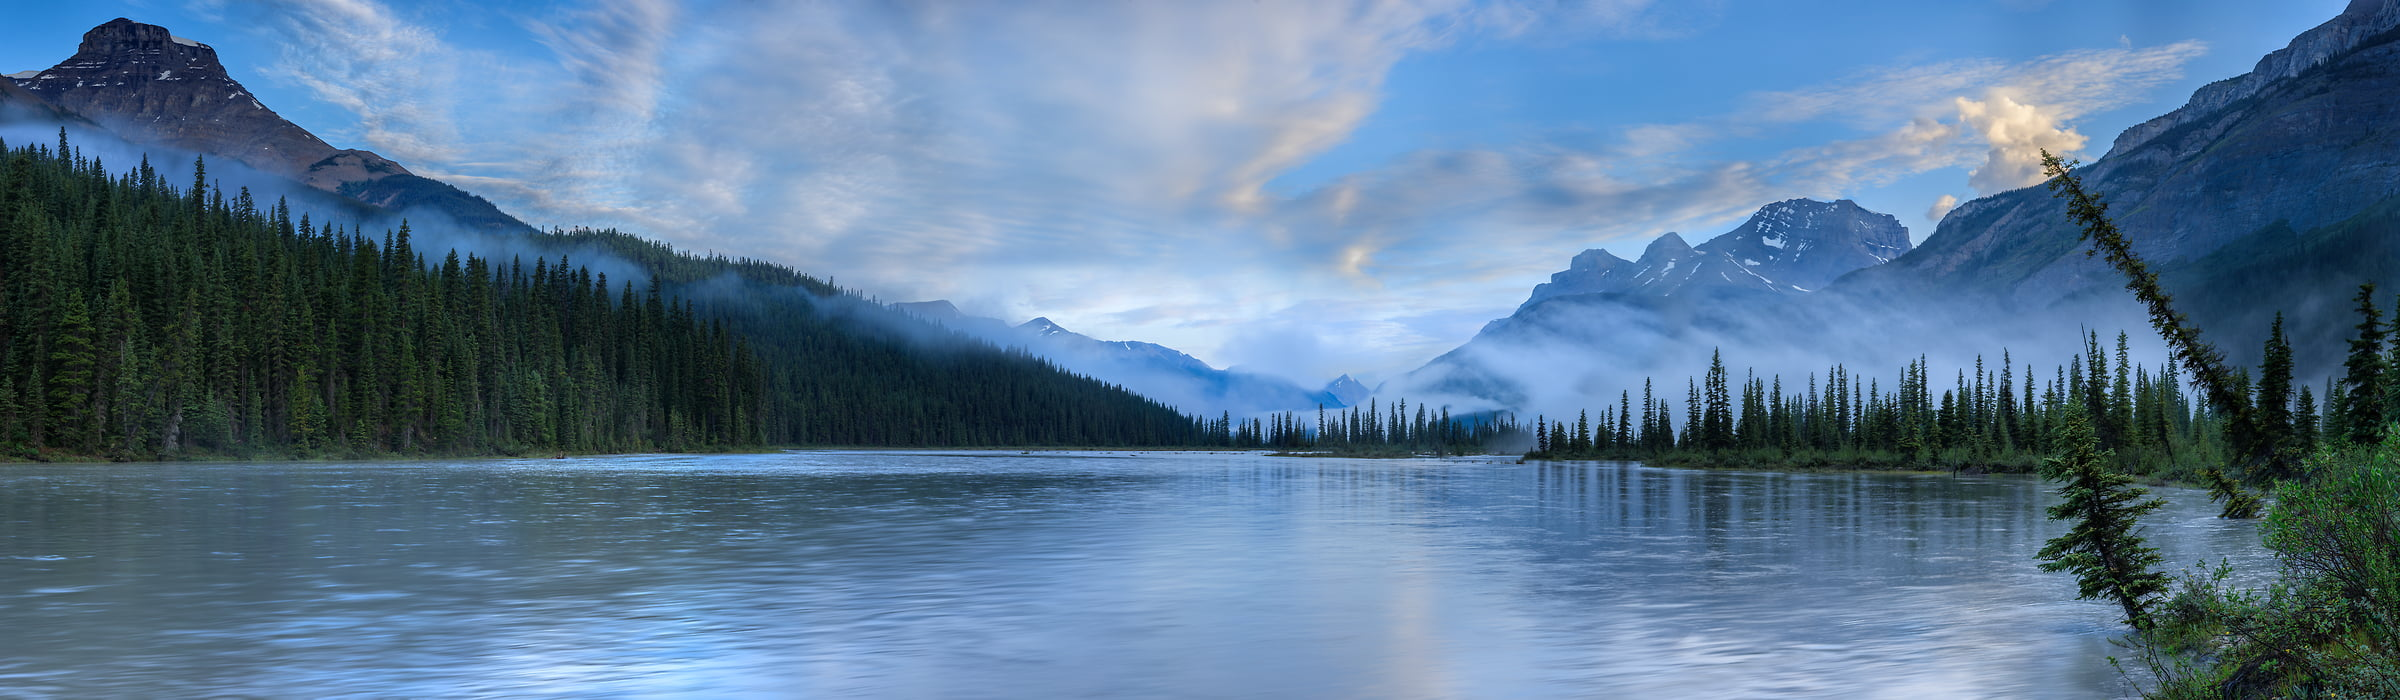 570 megapixels! A very high resolution, large-format VAST photo print of a peaceful lake in the morning with some foggy mist rising; landscape photograph created by Scott Dimond in Banff National Park, Alberta, Canada